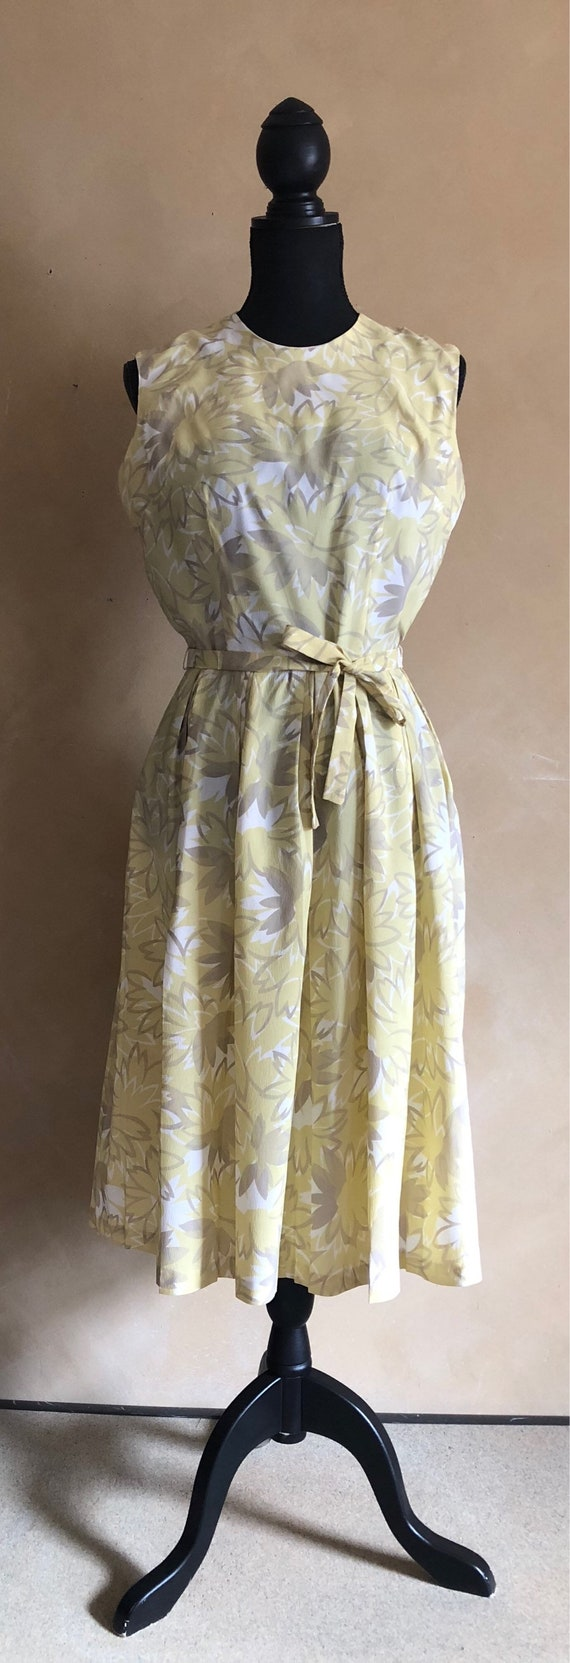 Vintage 50's Spring Summer Dress - Yellow & Grey Floral